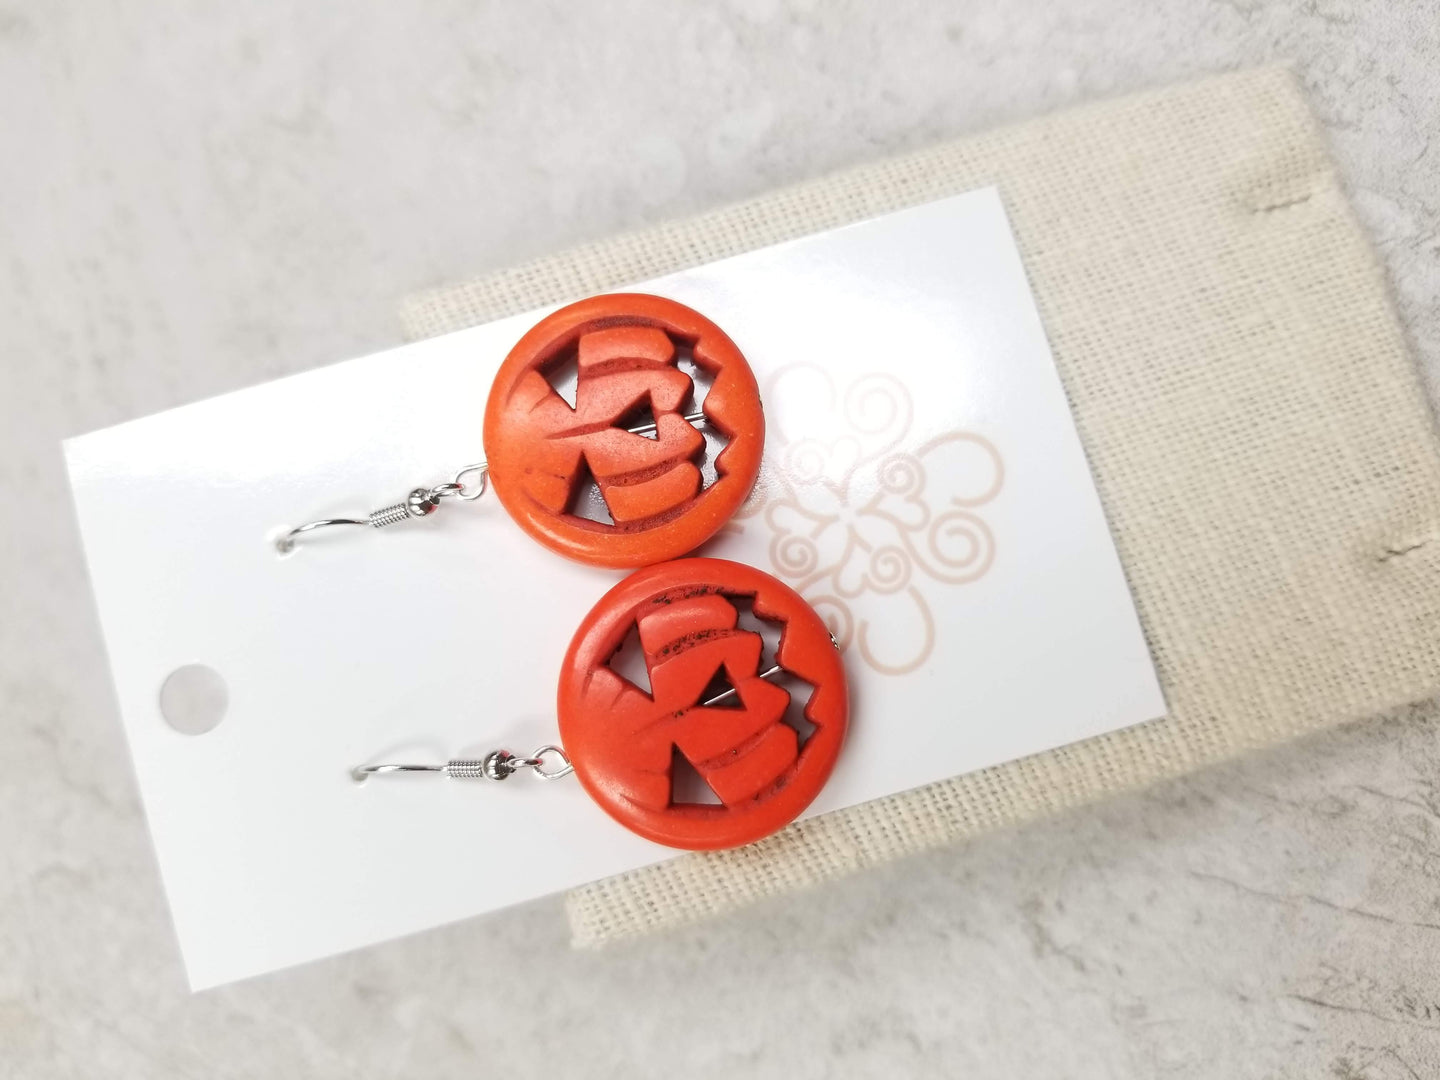 Jack-O Lantern Earrings